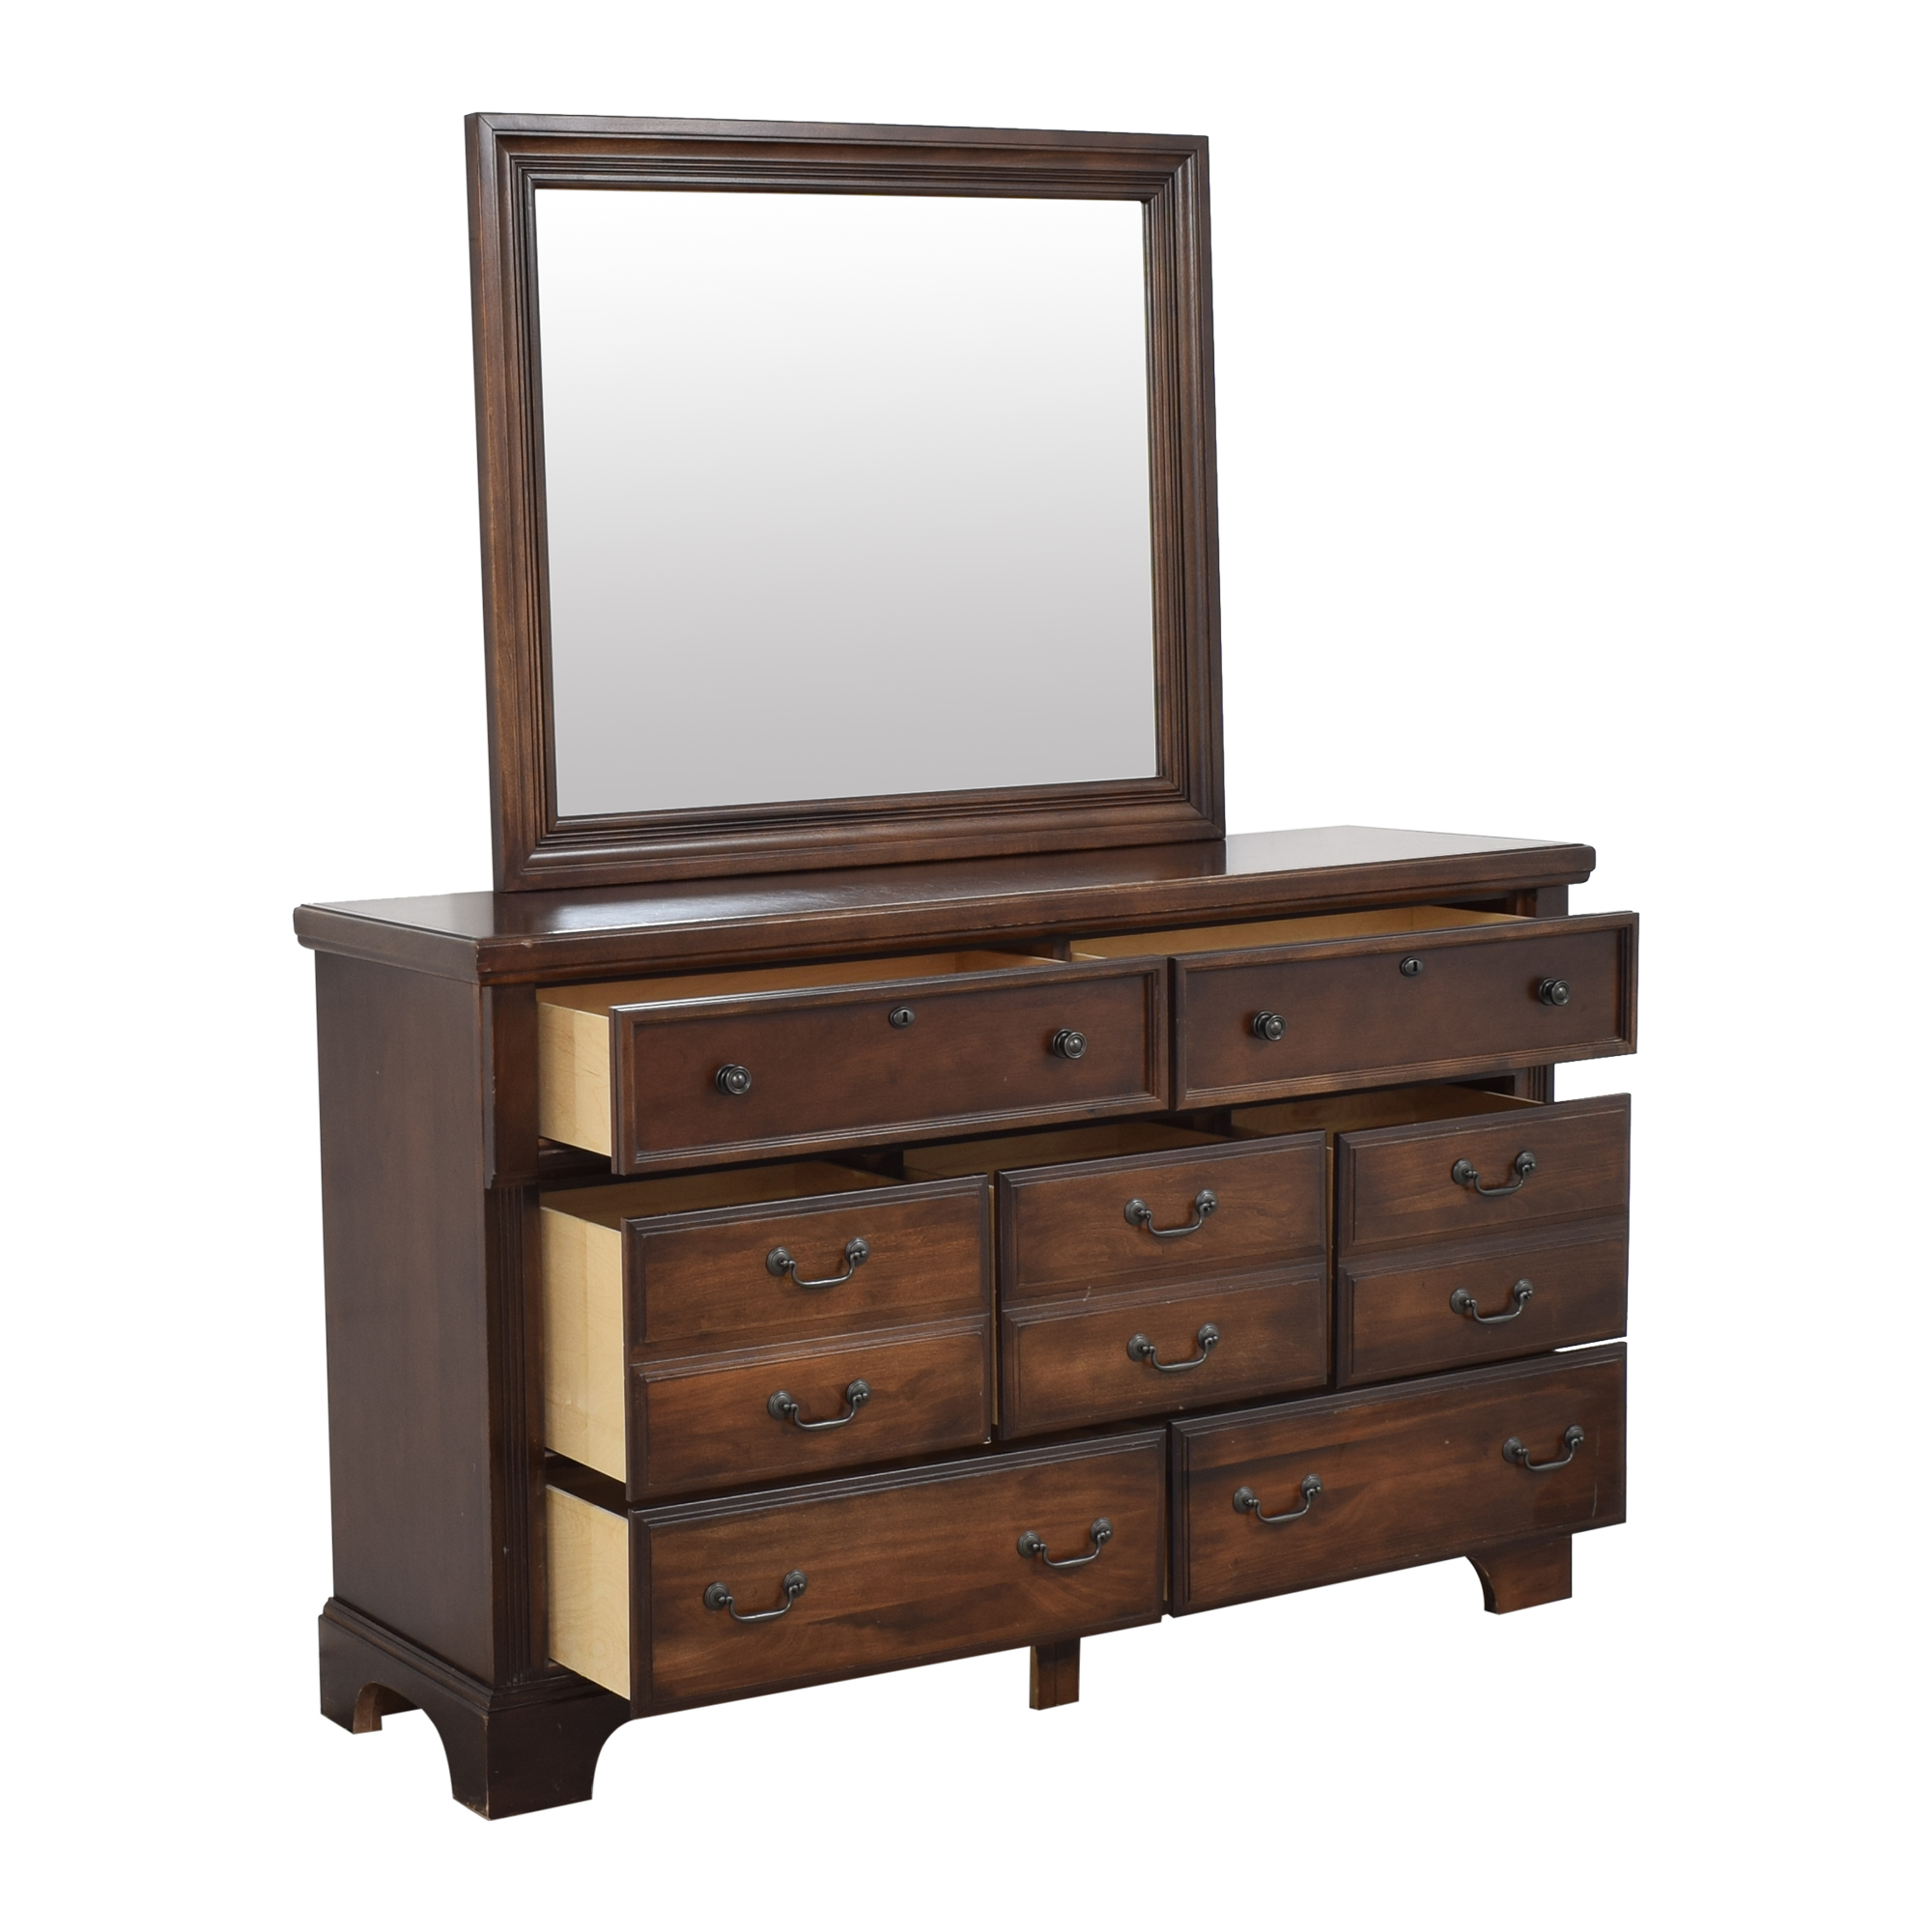 Vaughan-Bassett Vaughan-Bassett Triple Dresser with Mirror second hand